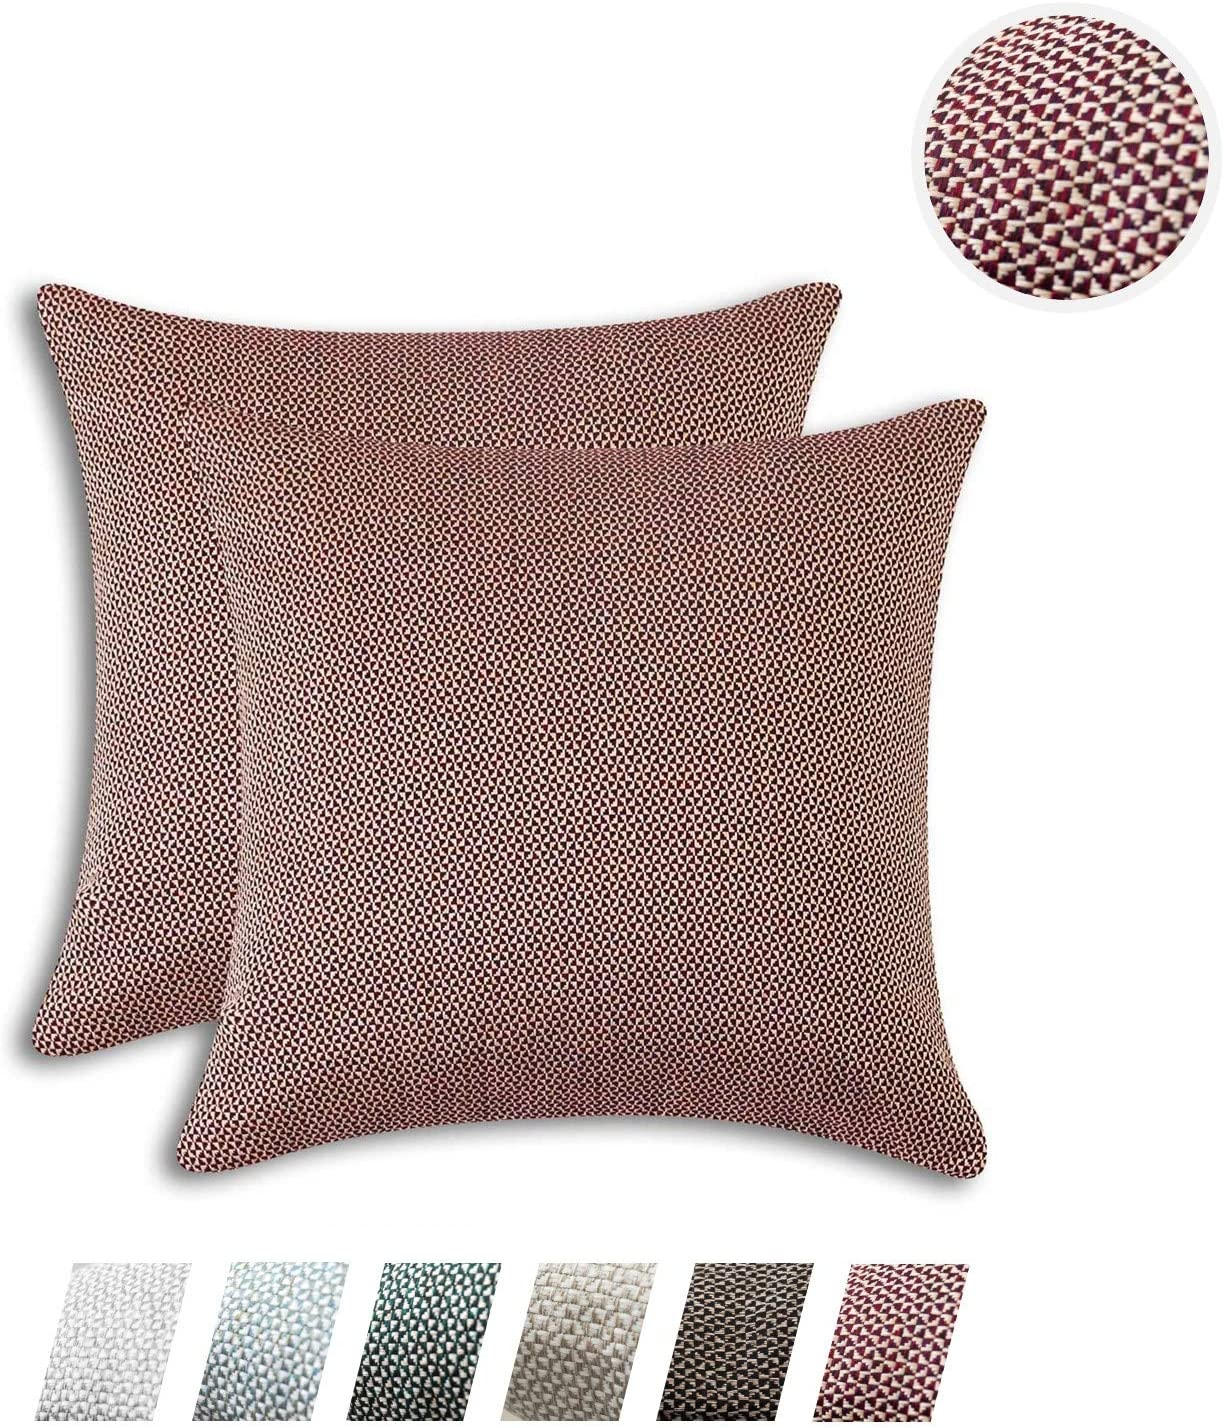 HPUK Woven Texture Decorative Throw Pillow Cover Pack of 2 Diamond Pattern Pillowcase Modern Farmhouse Euro Sham Cushion Cover 17x17 inch for Couch Sofa Living Room Office Car, Plum Red